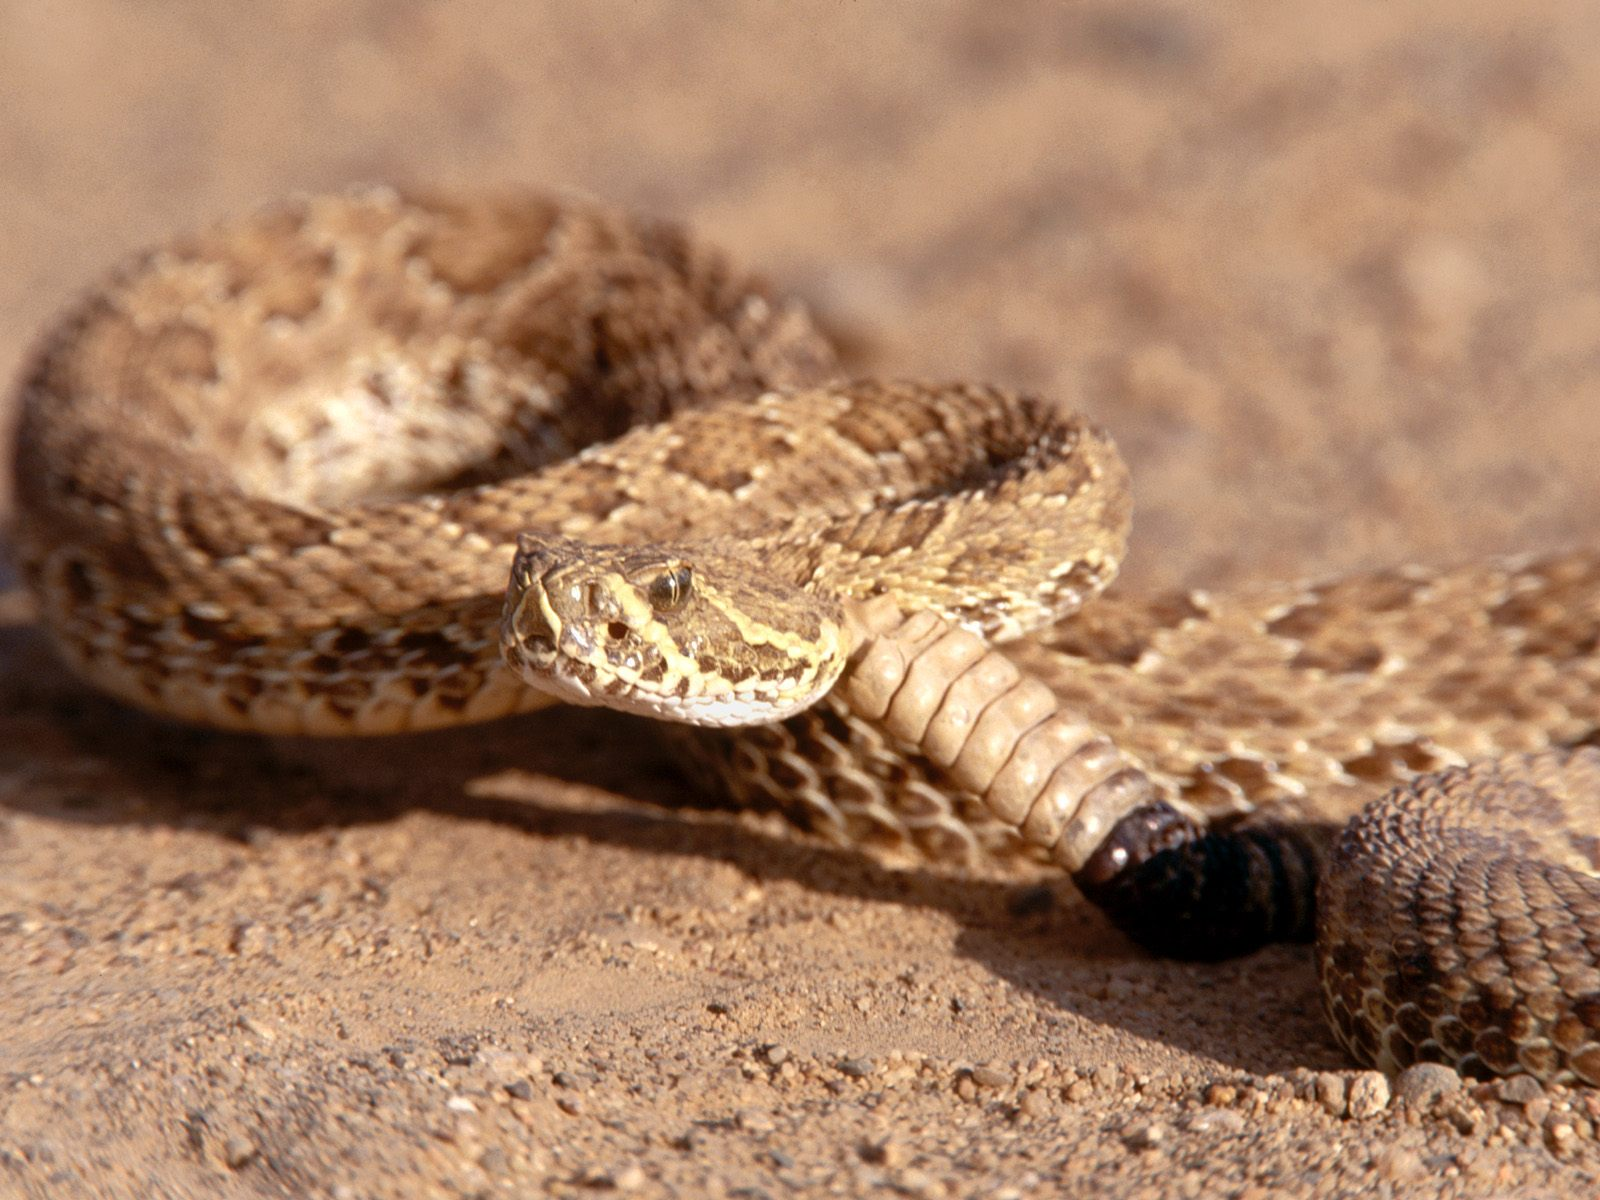 Amazing hd desktop background picture of rattle snake reptiles wallpaper